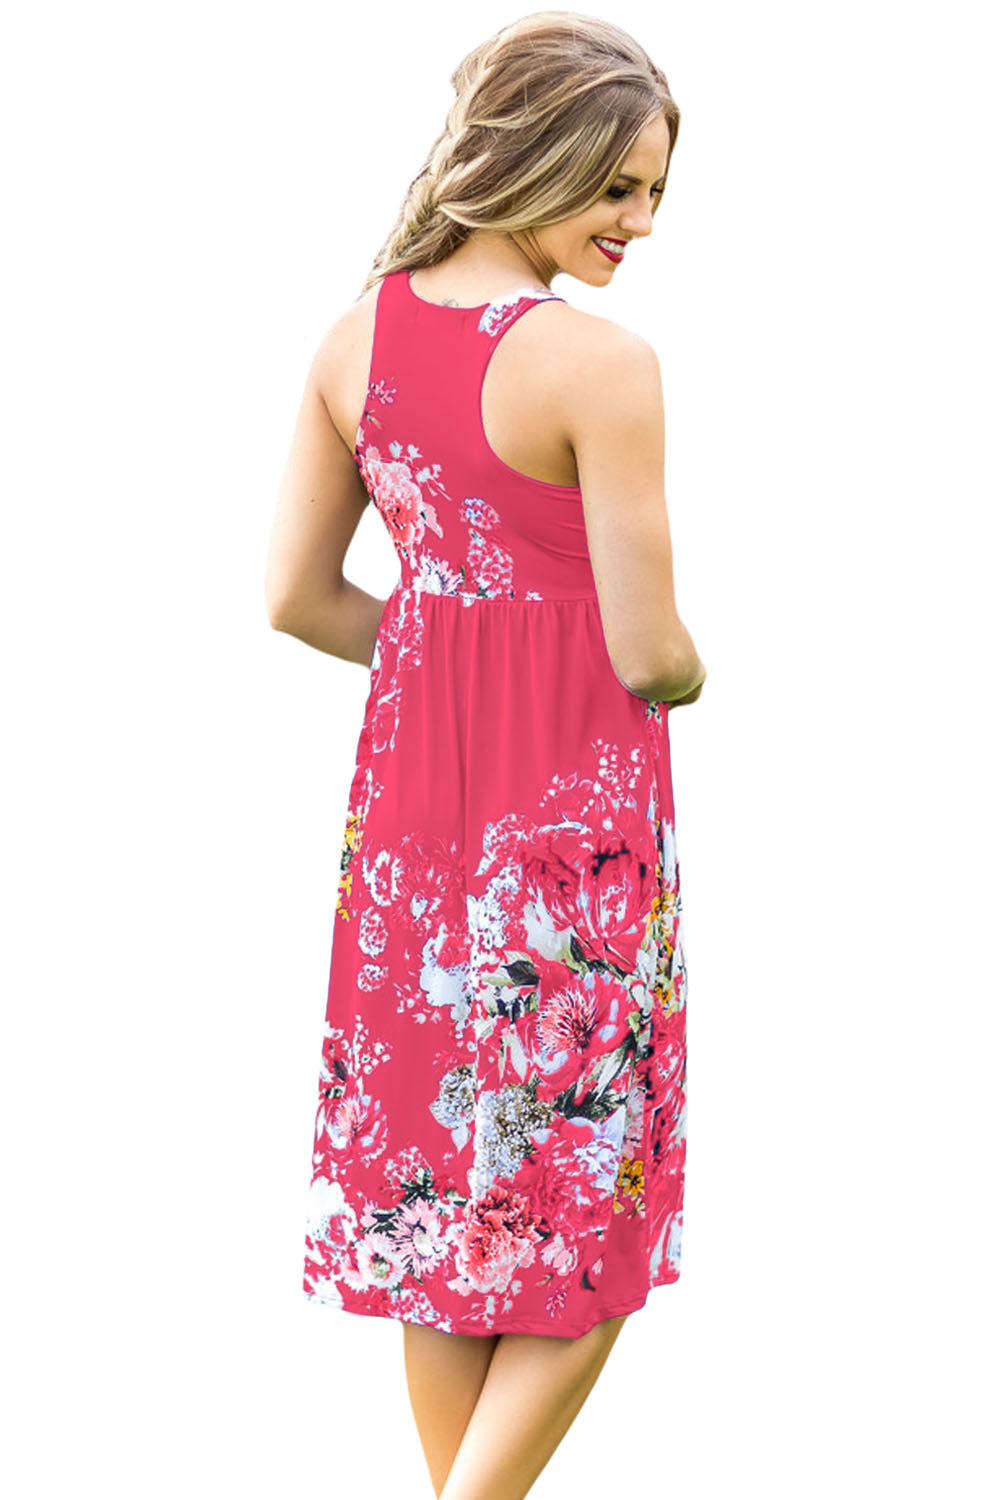 Fall in Love with Floral Print Boho Dress in Rosy